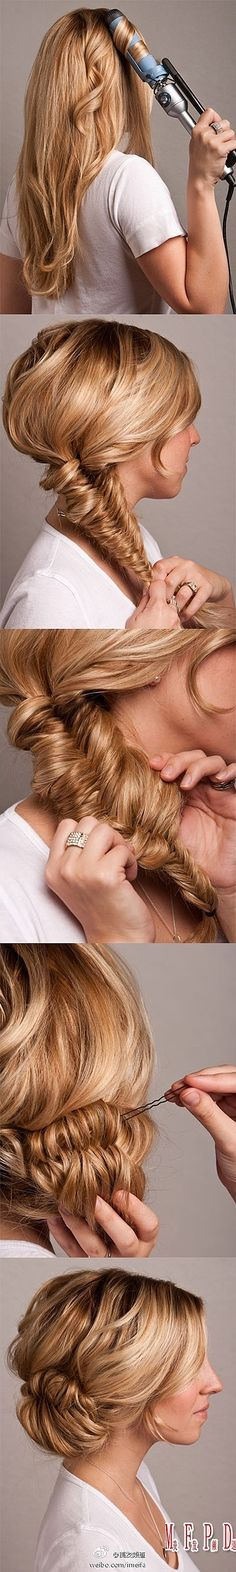 fishtail braid into a loose bun